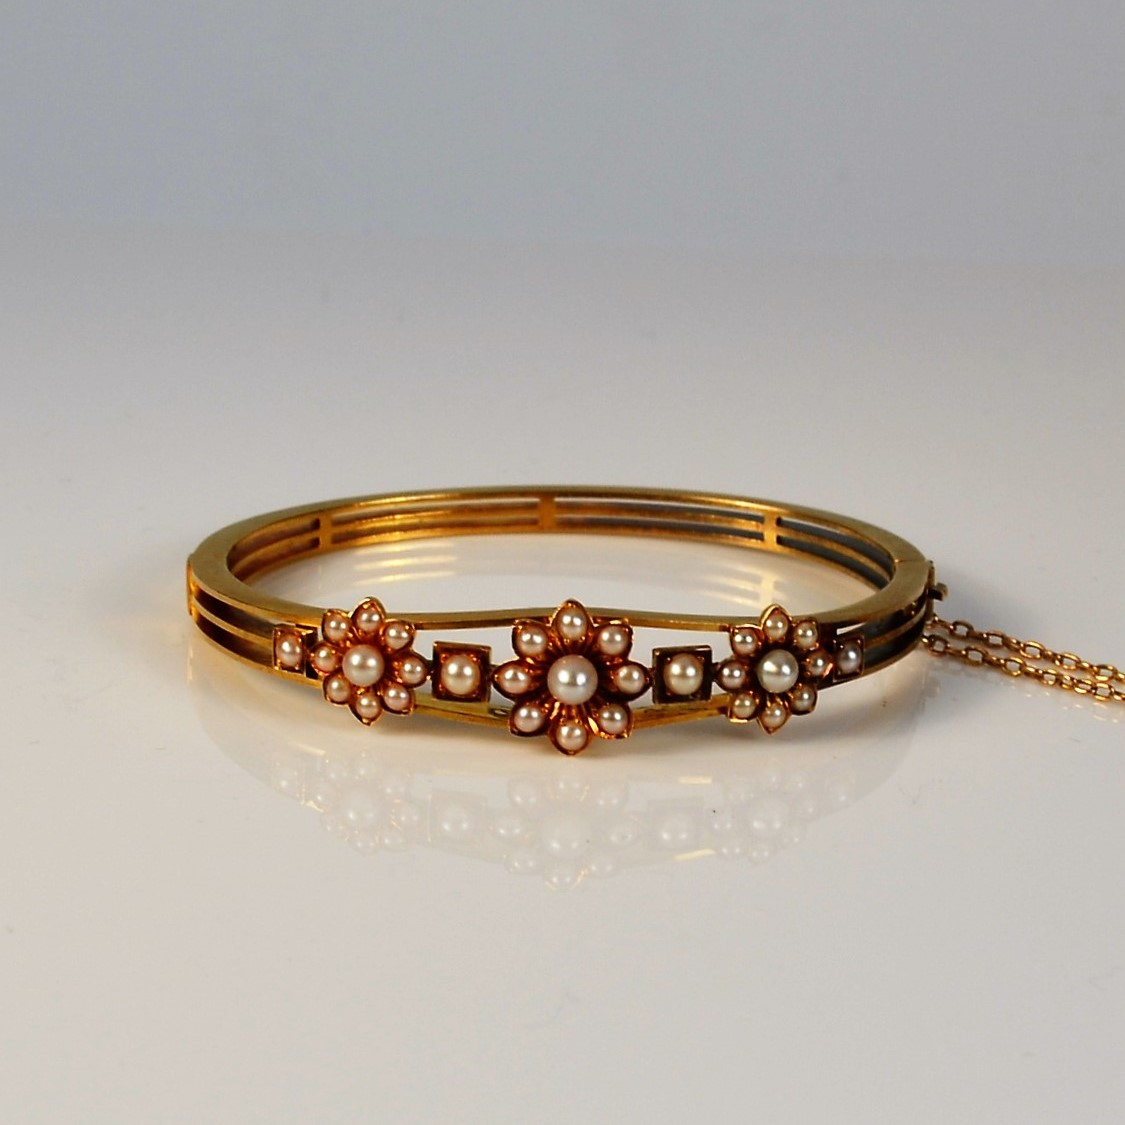 Antique English 15 Carat Gold And Pearl Bangle